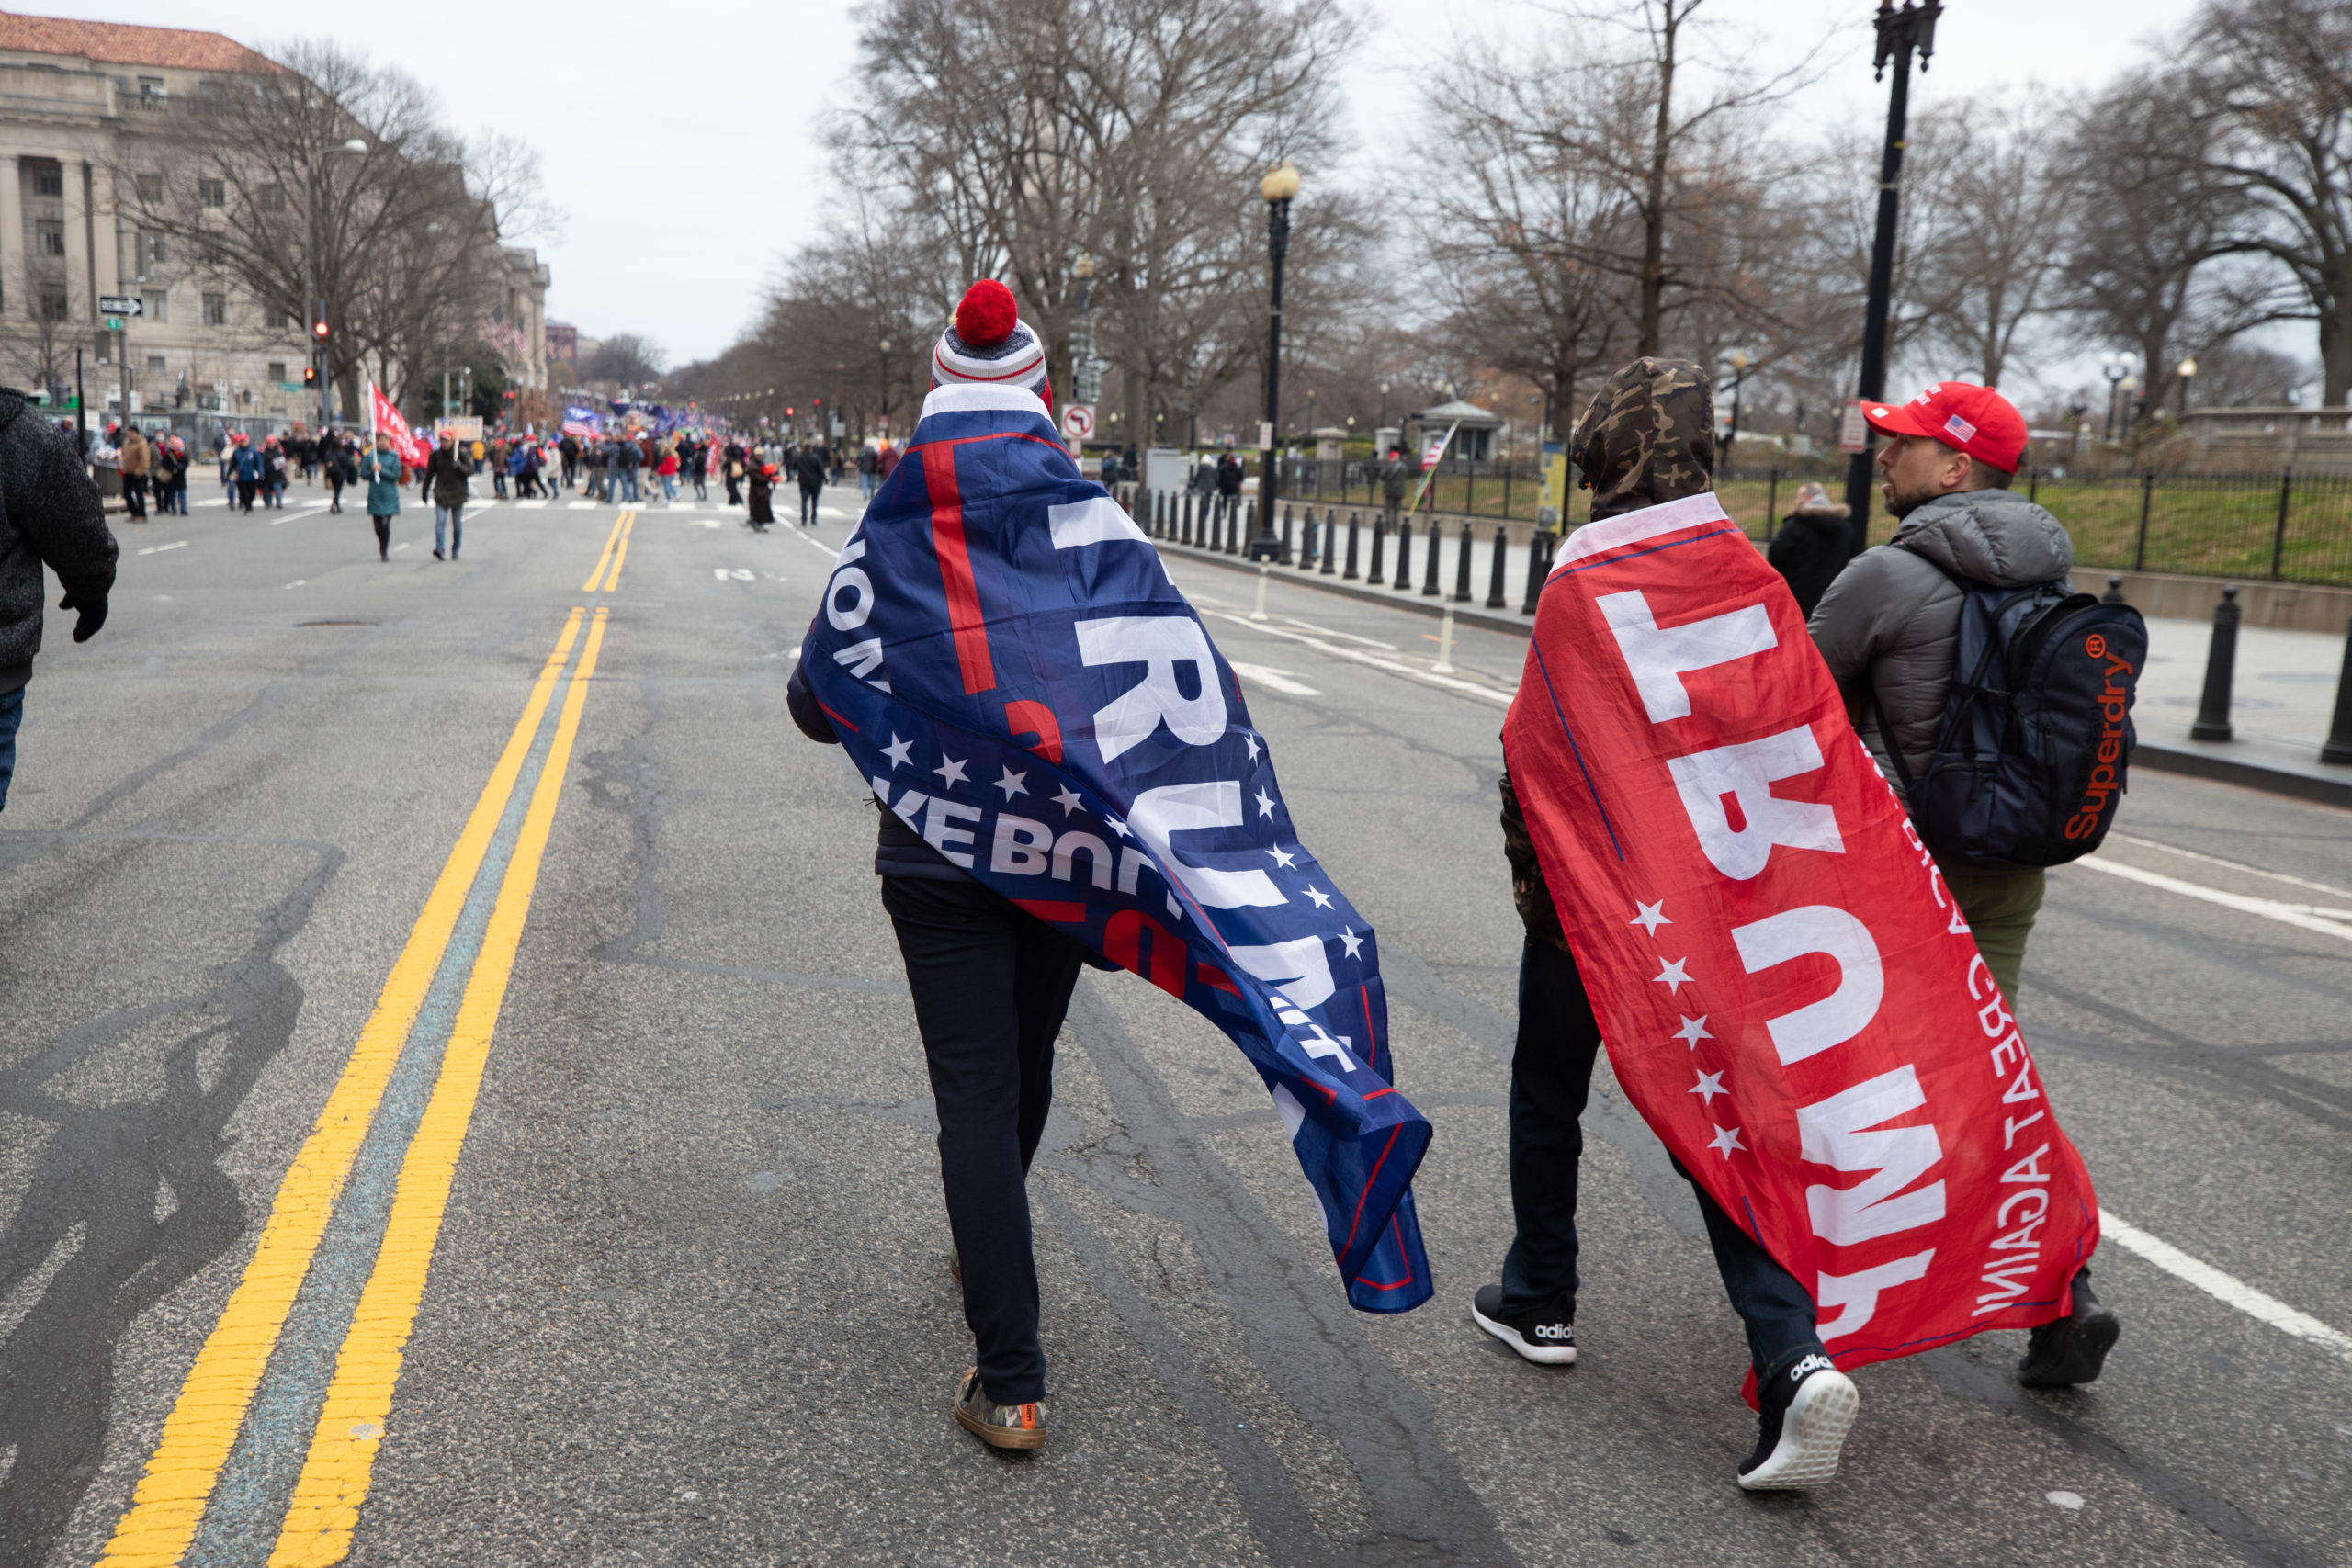 Pro-President Donald Trump supporters headed to The Ellipses to hear the president speak at a rally in Washington, D.C. on Jan. 6, 2021. (Kaylee Greenlee – Daily Caller News Foundation)